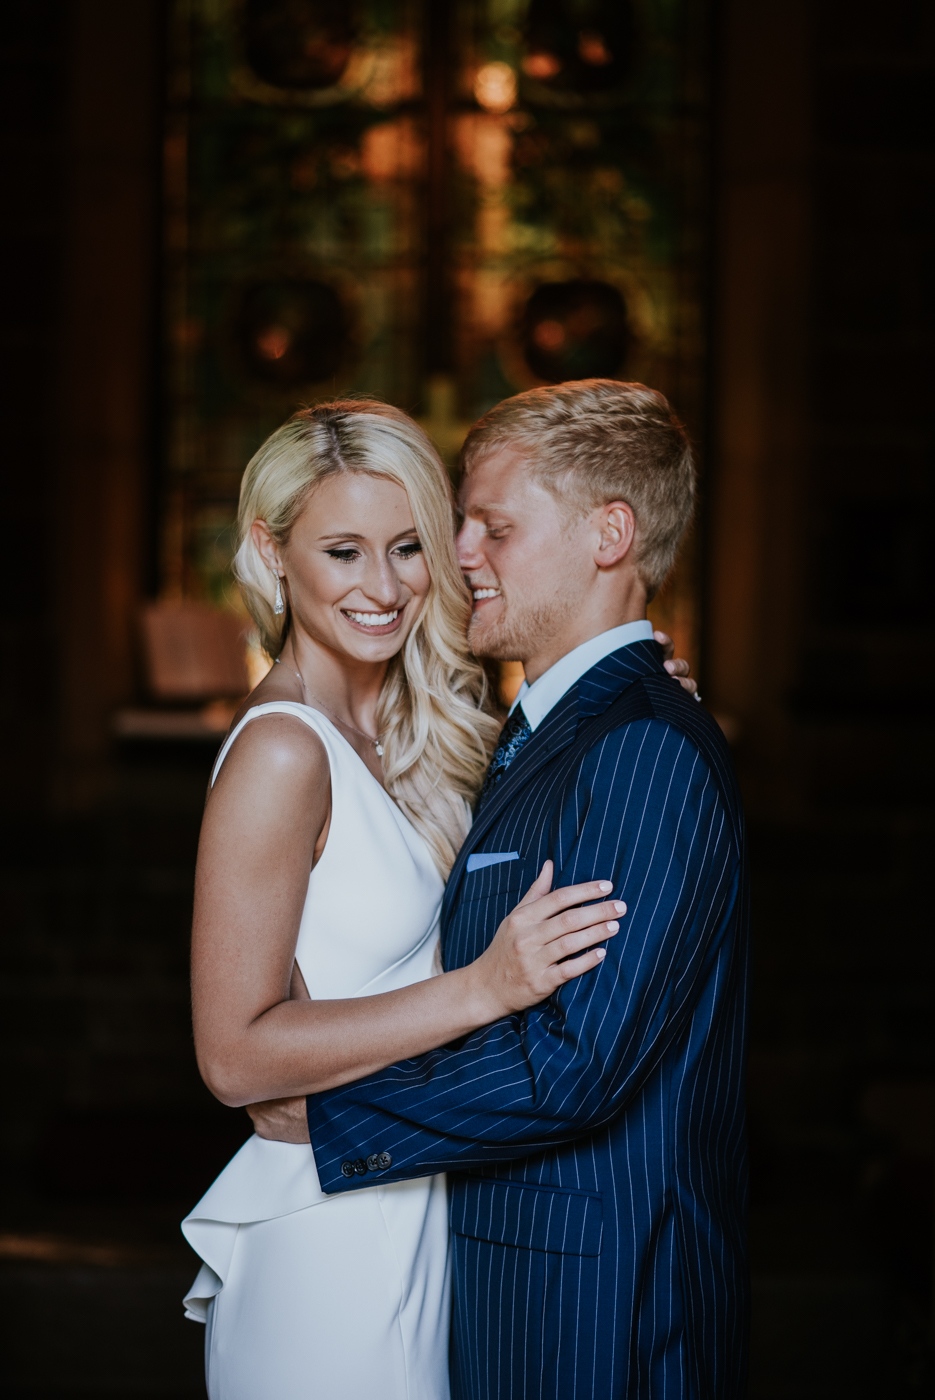 Sierra+Jacob.Wedding.Blog©mileswittboyer.com2018-101.jpg